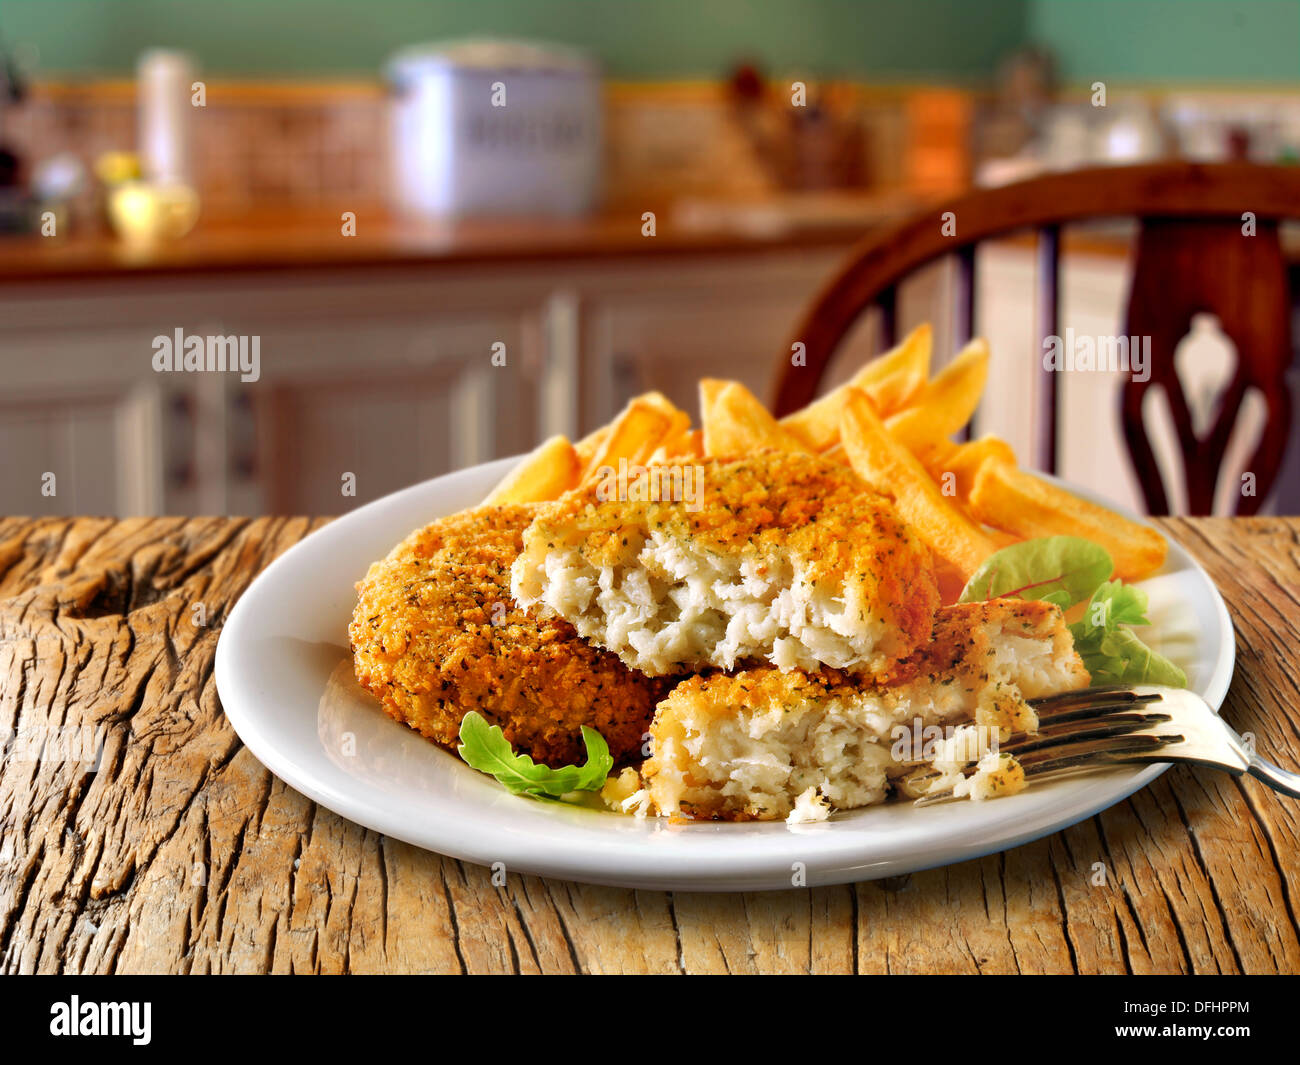 British Food - Breaded Fish Cake & Chips - Stock Image